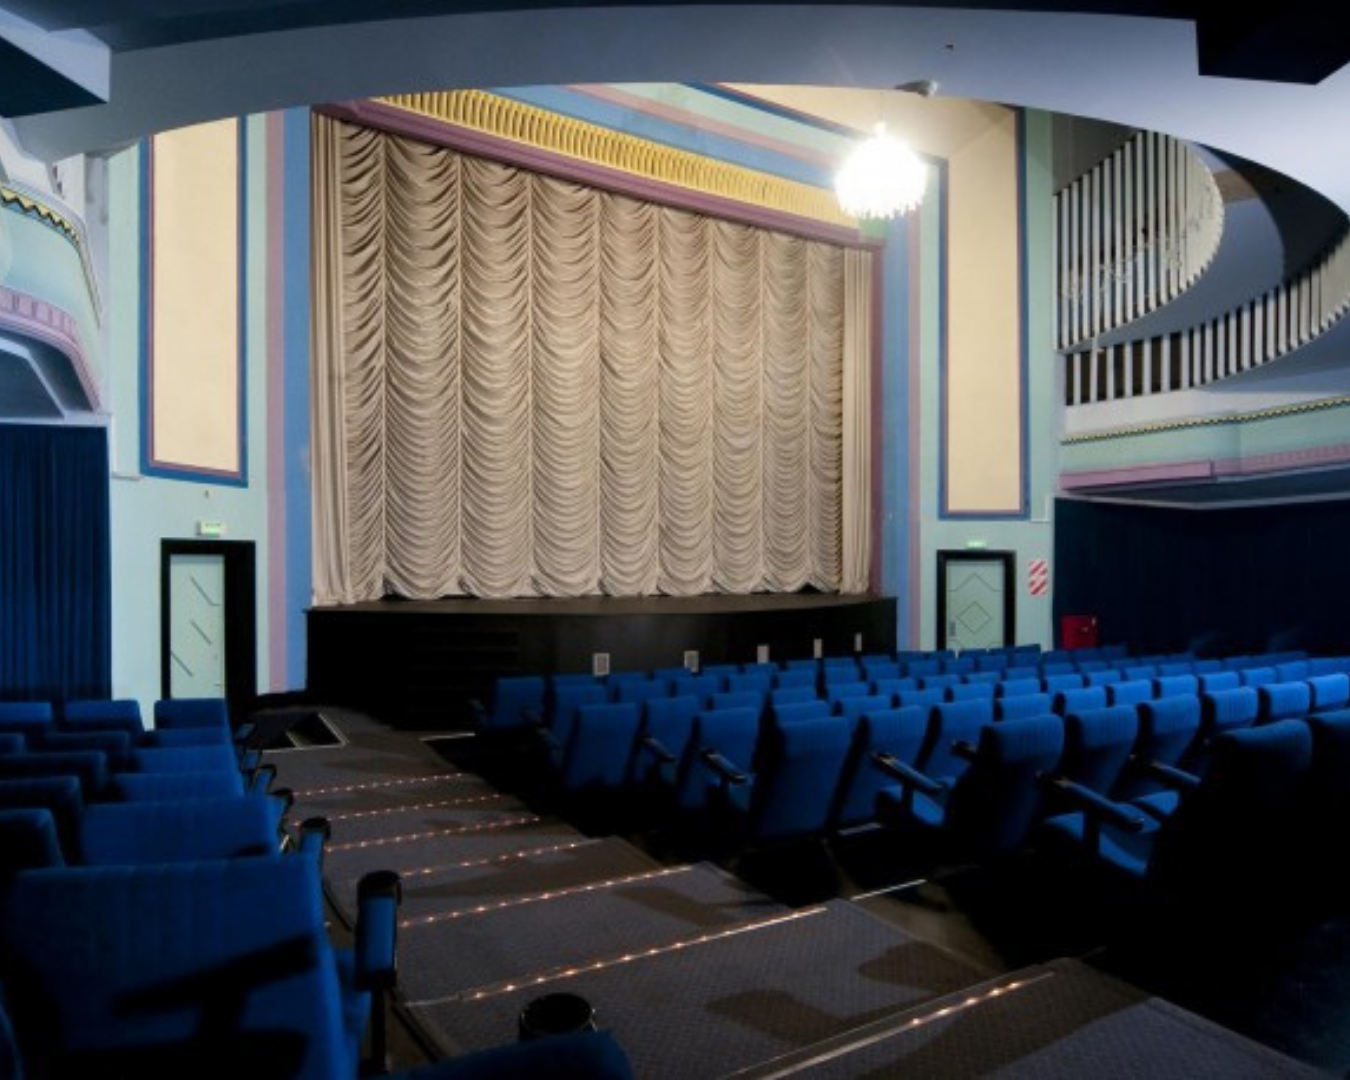 Vintage interiors of the The Vic cinemas